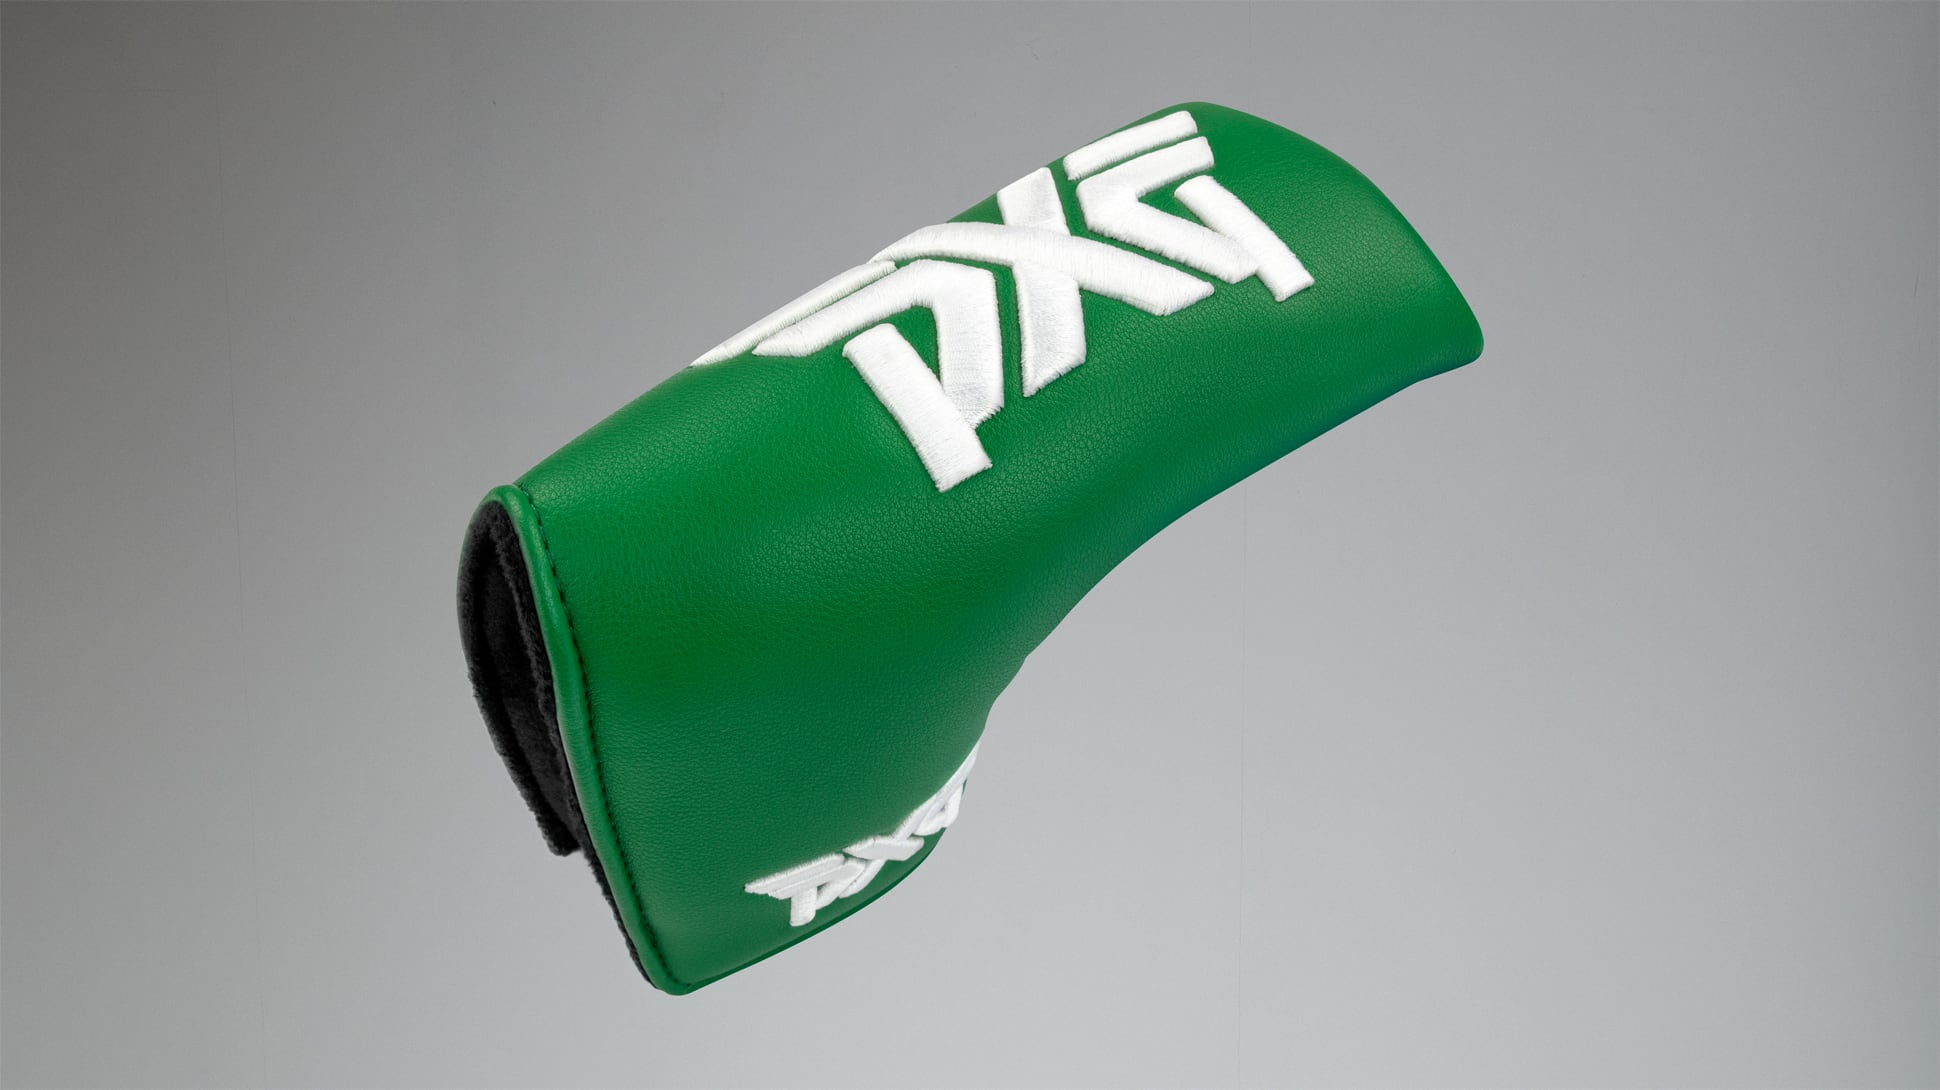 Georgia Green Standard Blade Putter Headcover Image 1